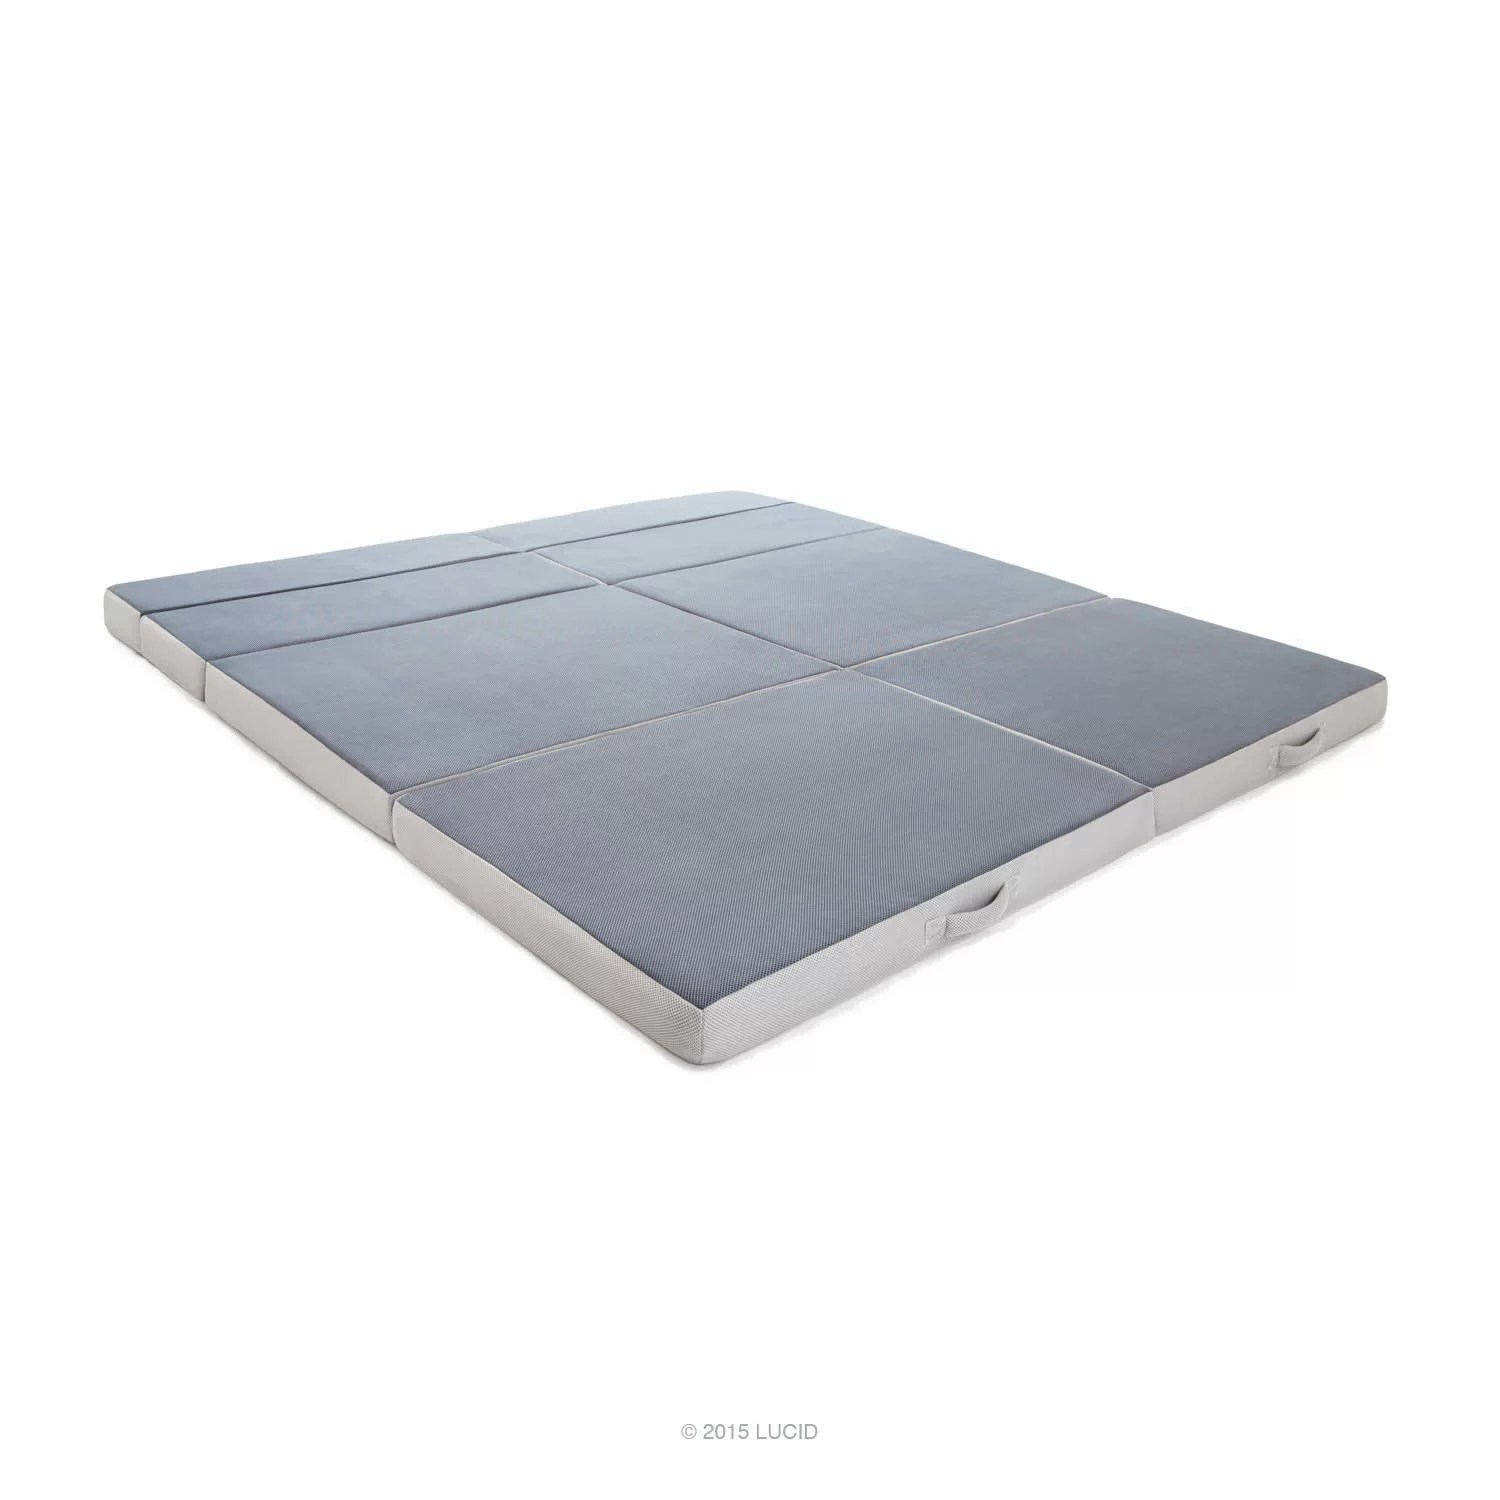 Foldable Foam Mattress Folding 4